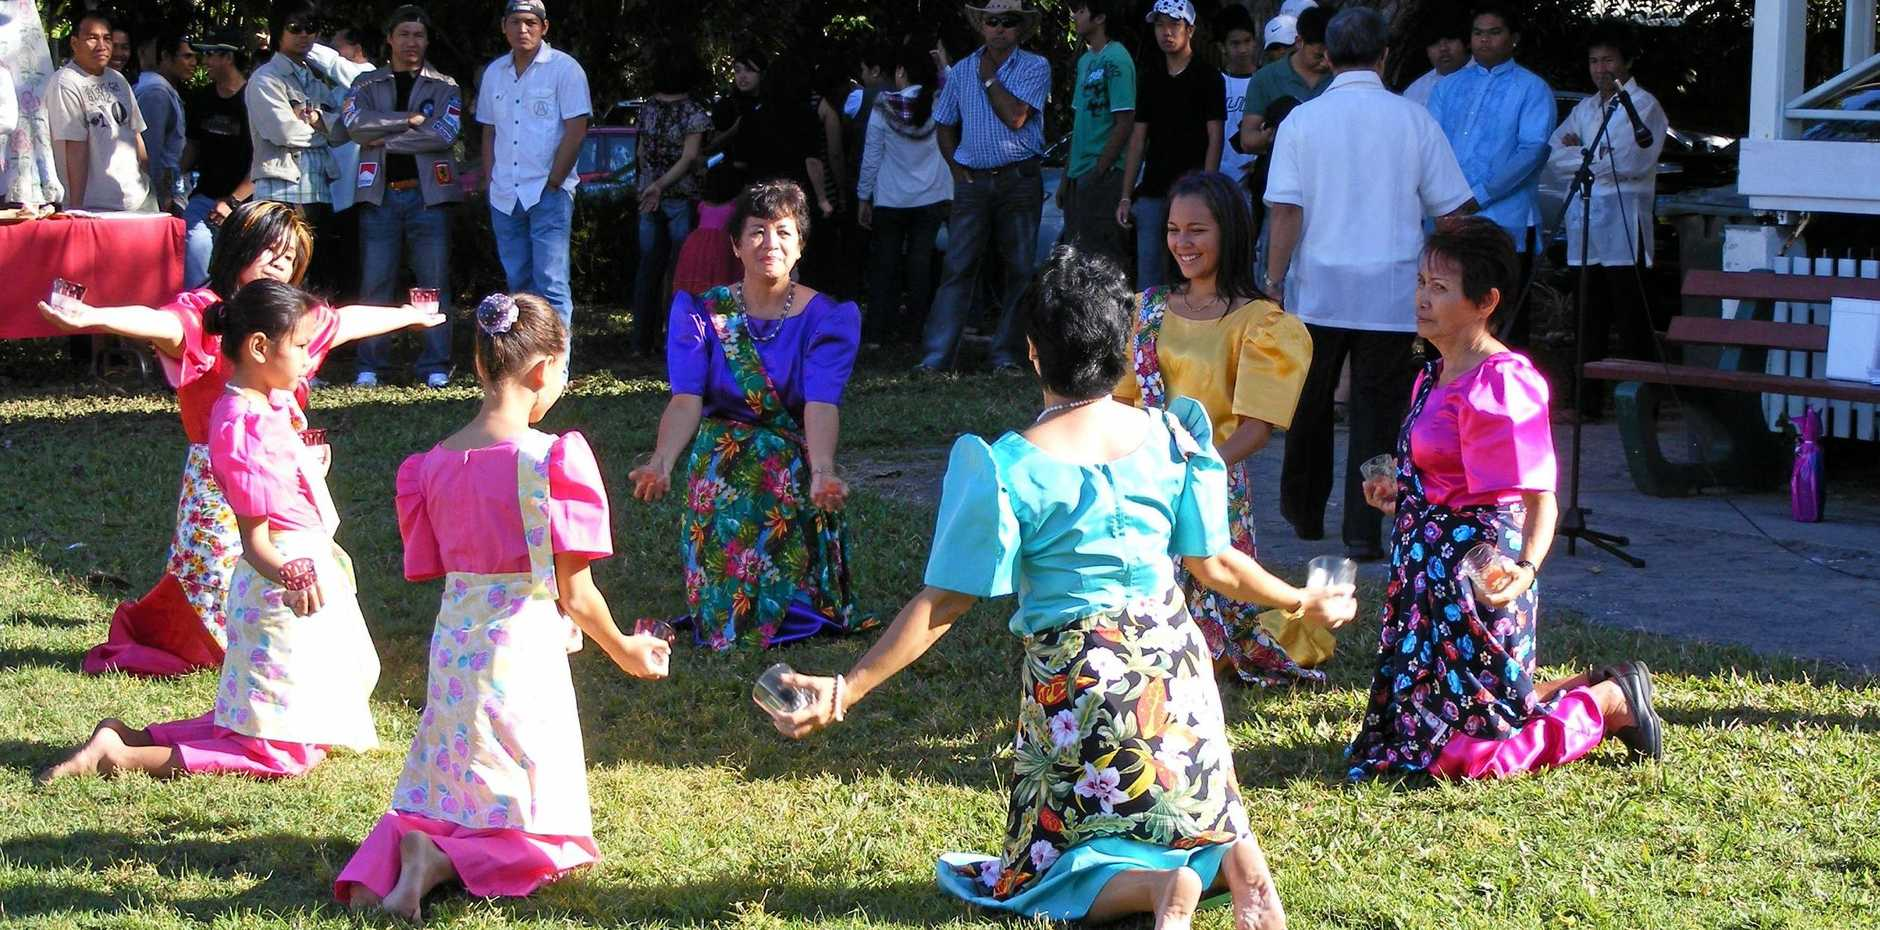 SPECIAL DAY: Traditional Filipino dances will be performed at a community event in Mackay to celebrate the 122nd anniversary of Philippine independence.